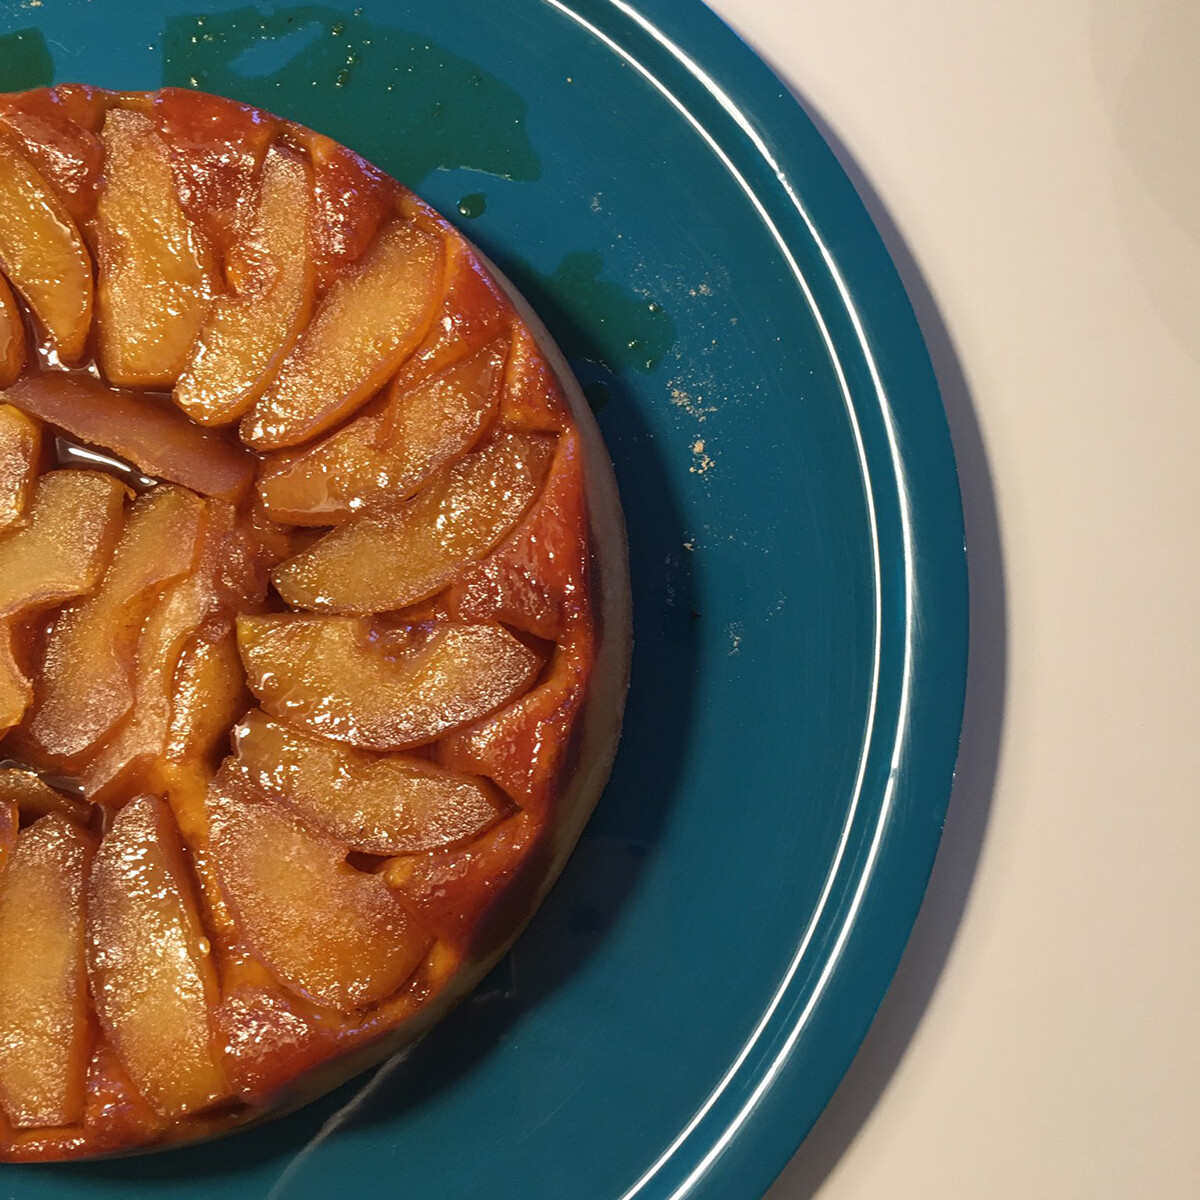 THE RECIPE OF TARTE TATIN